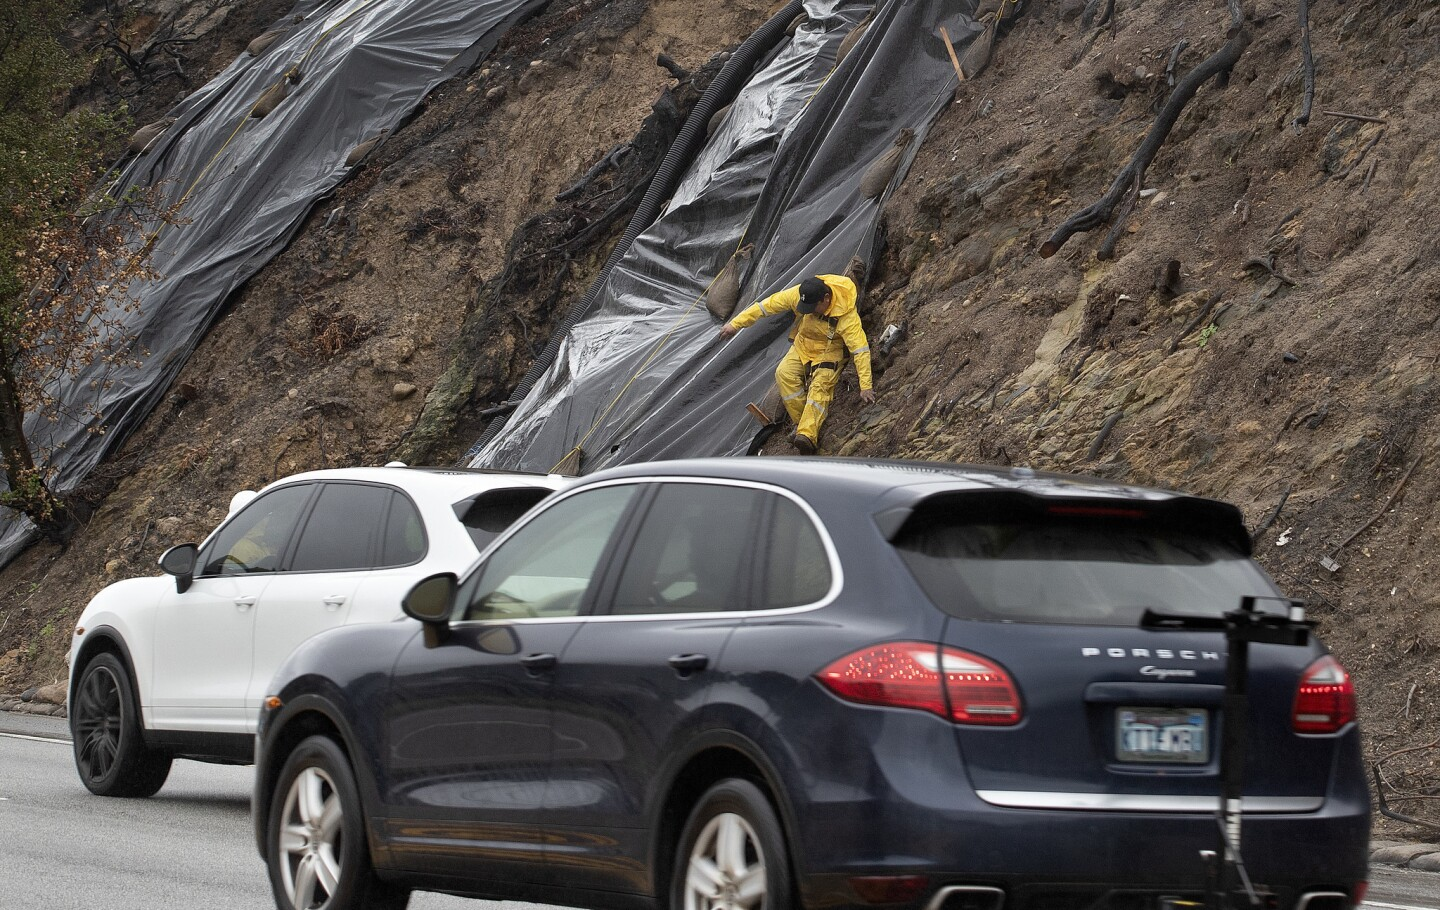 Rolly Chinan makes his way down a hillside after securing a tarp on Pacific Coast Highway in Malibu.